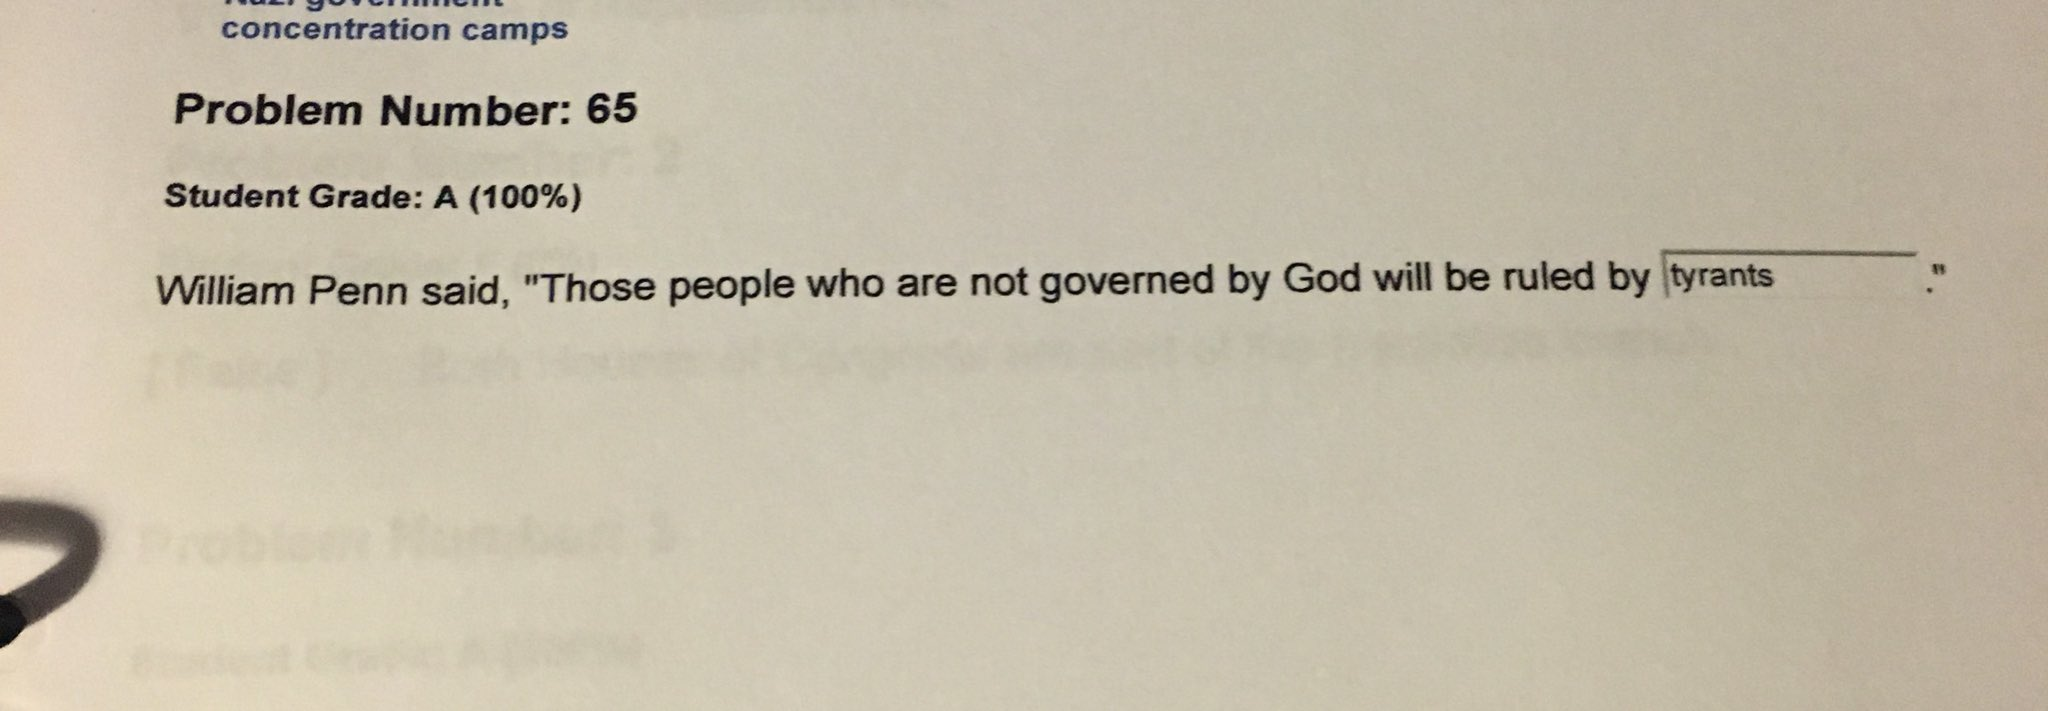 "[A scanned image of a fill-in-the-blank student test problem, ""William Penn said, Those people who are not governed by God will be ruled by"", where the blank at the end is filled in with ""tyrants"".]"